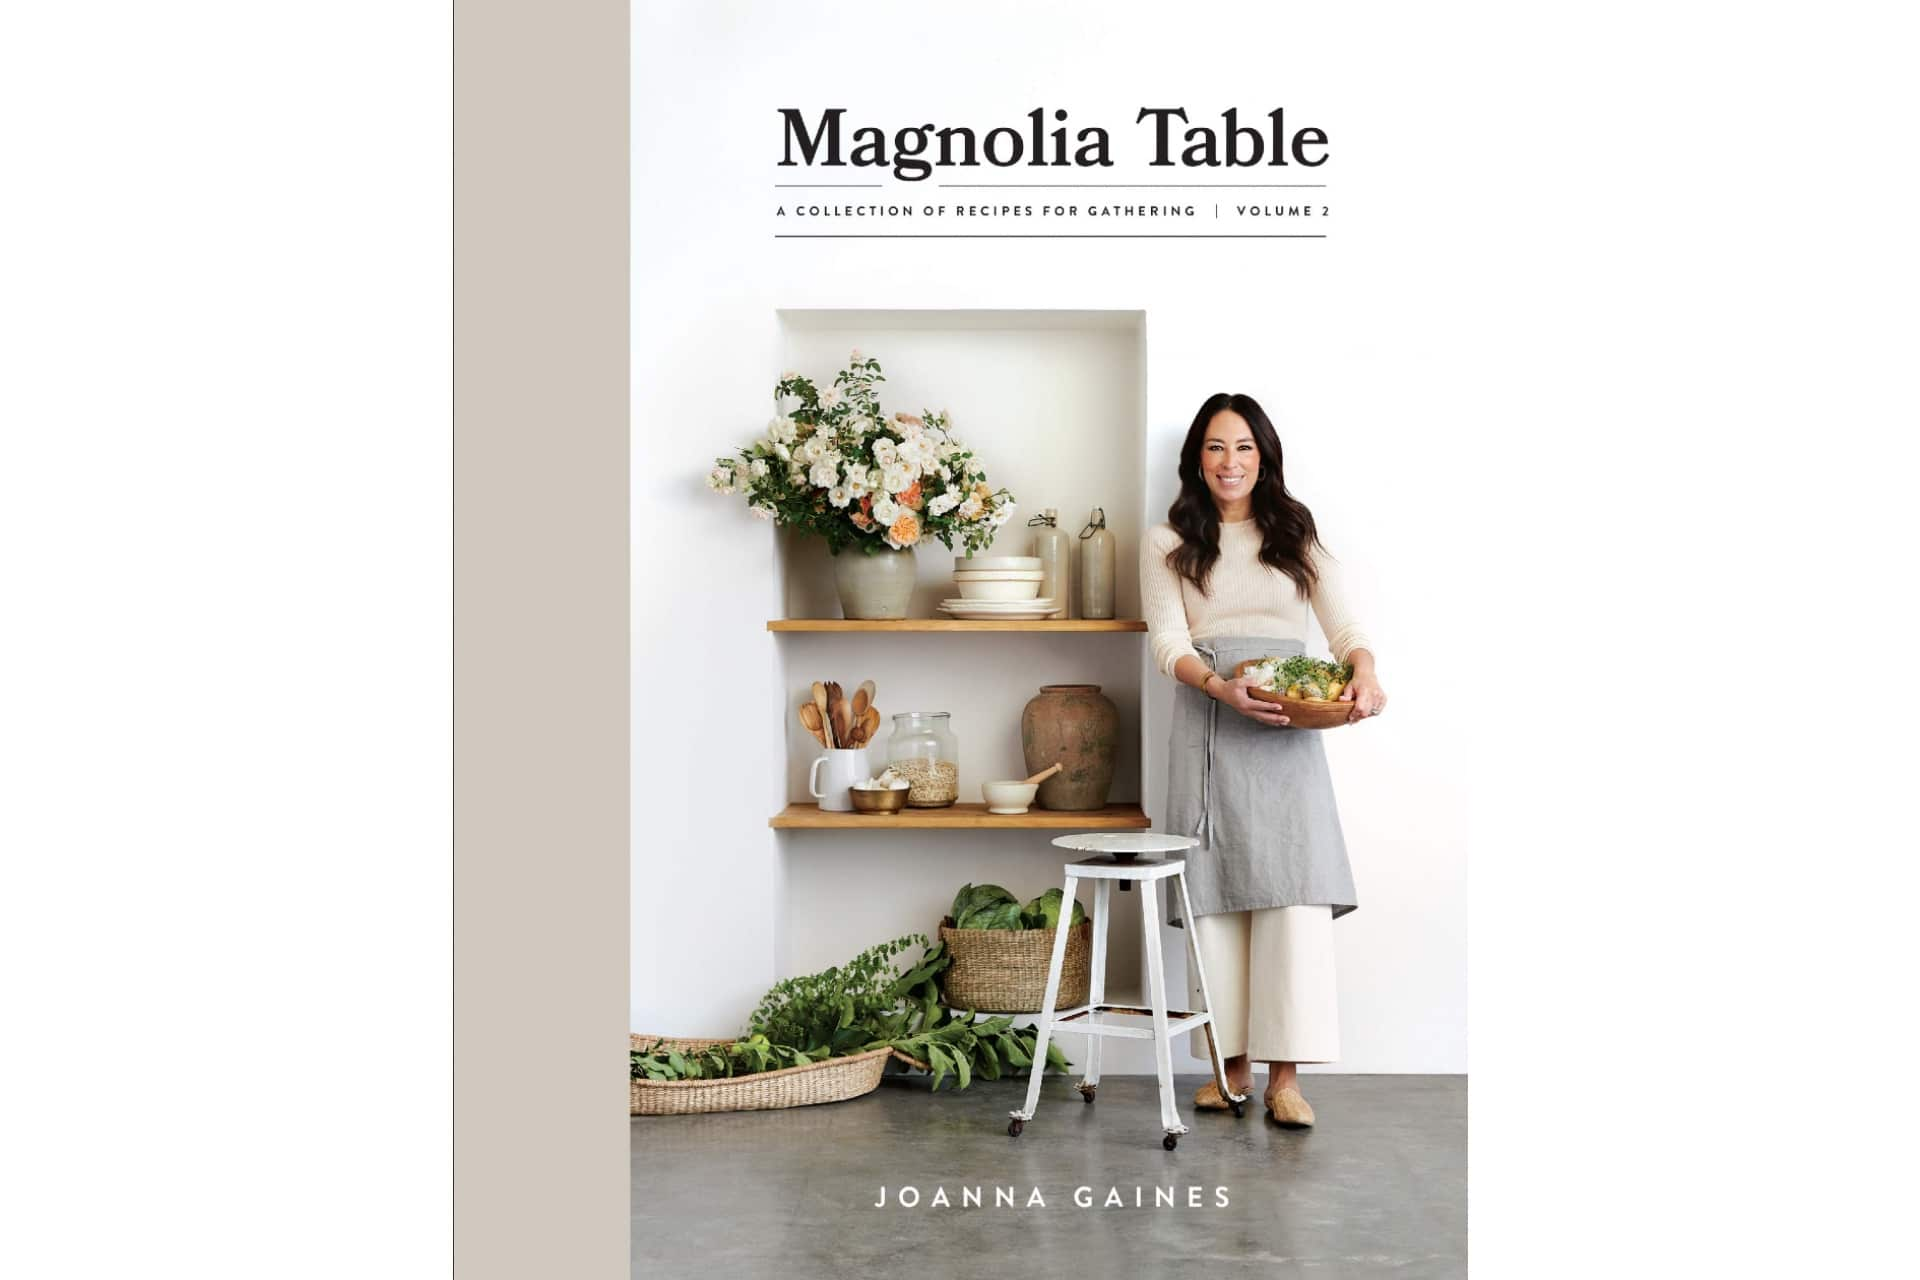 Magnolia Table cookbook with Joanna Gaines on the cover